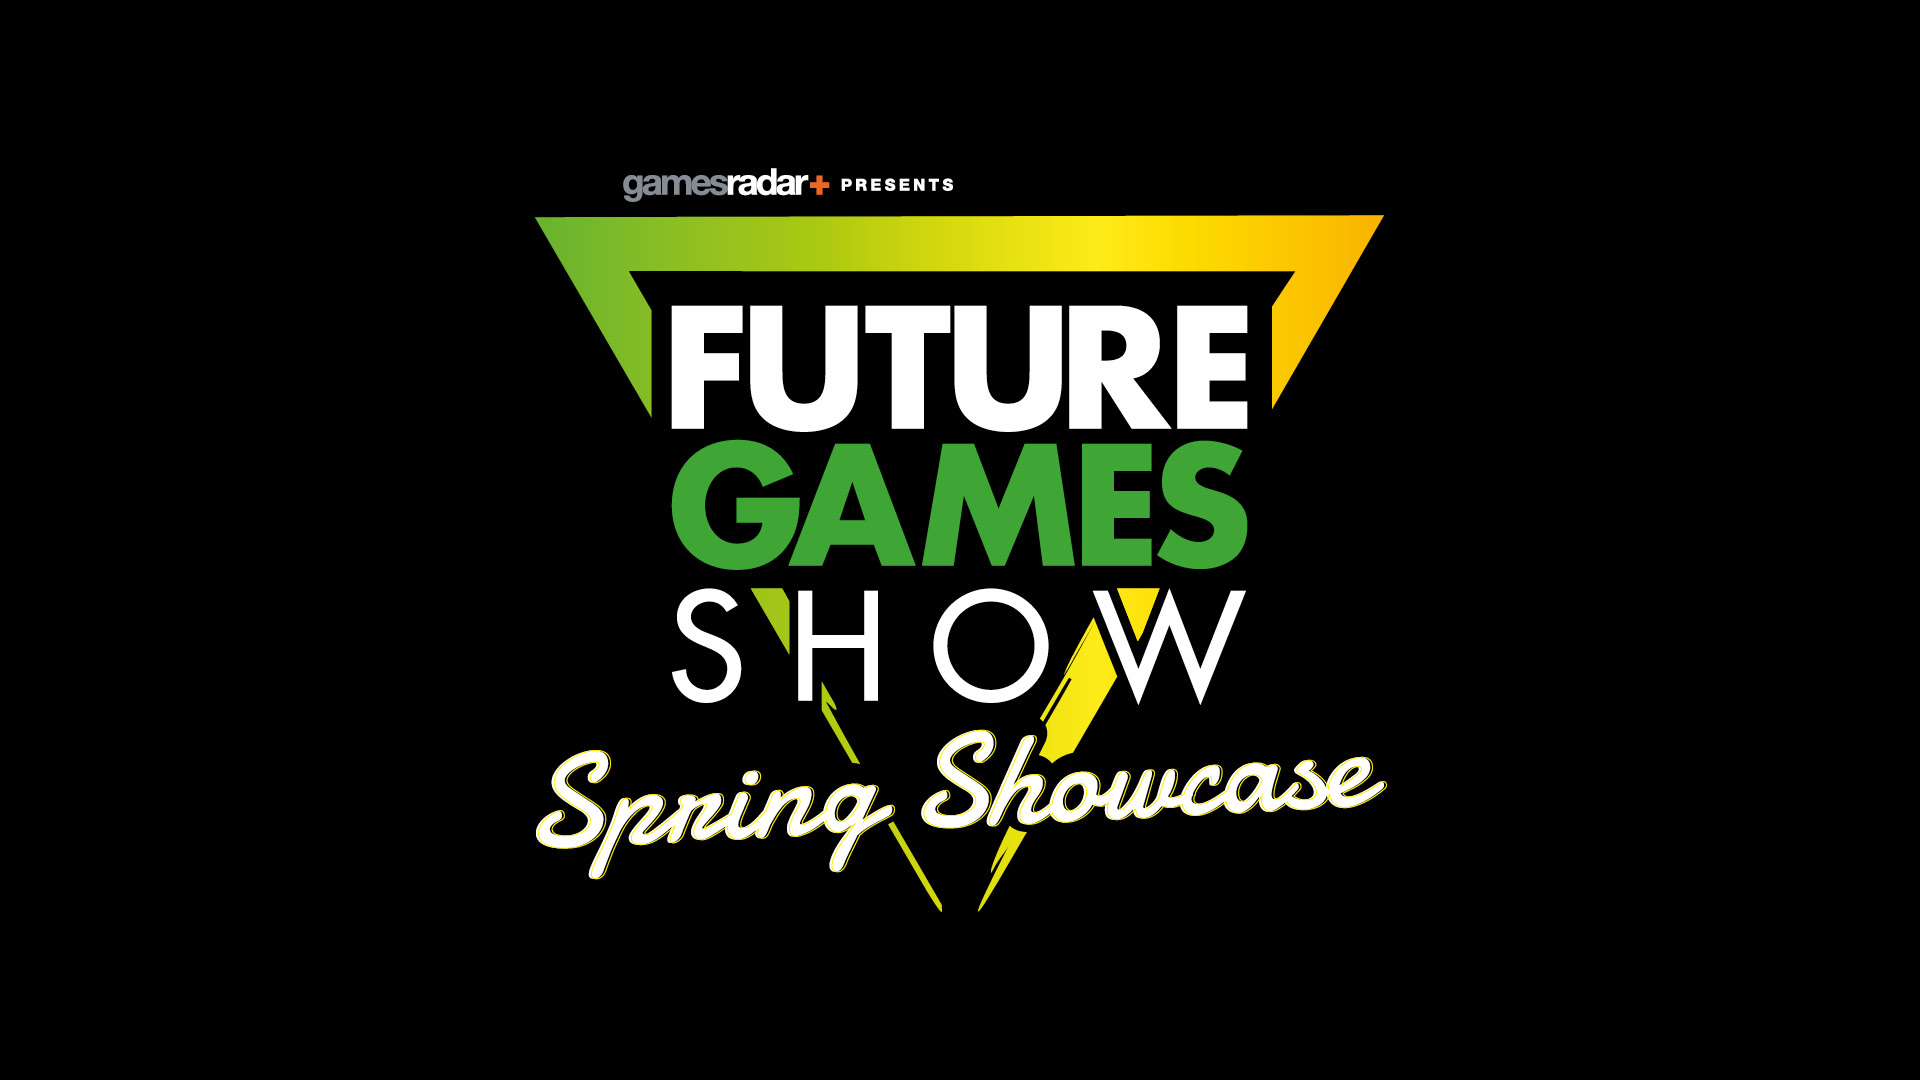 The Future Games Show is coming back this March with 40 new games